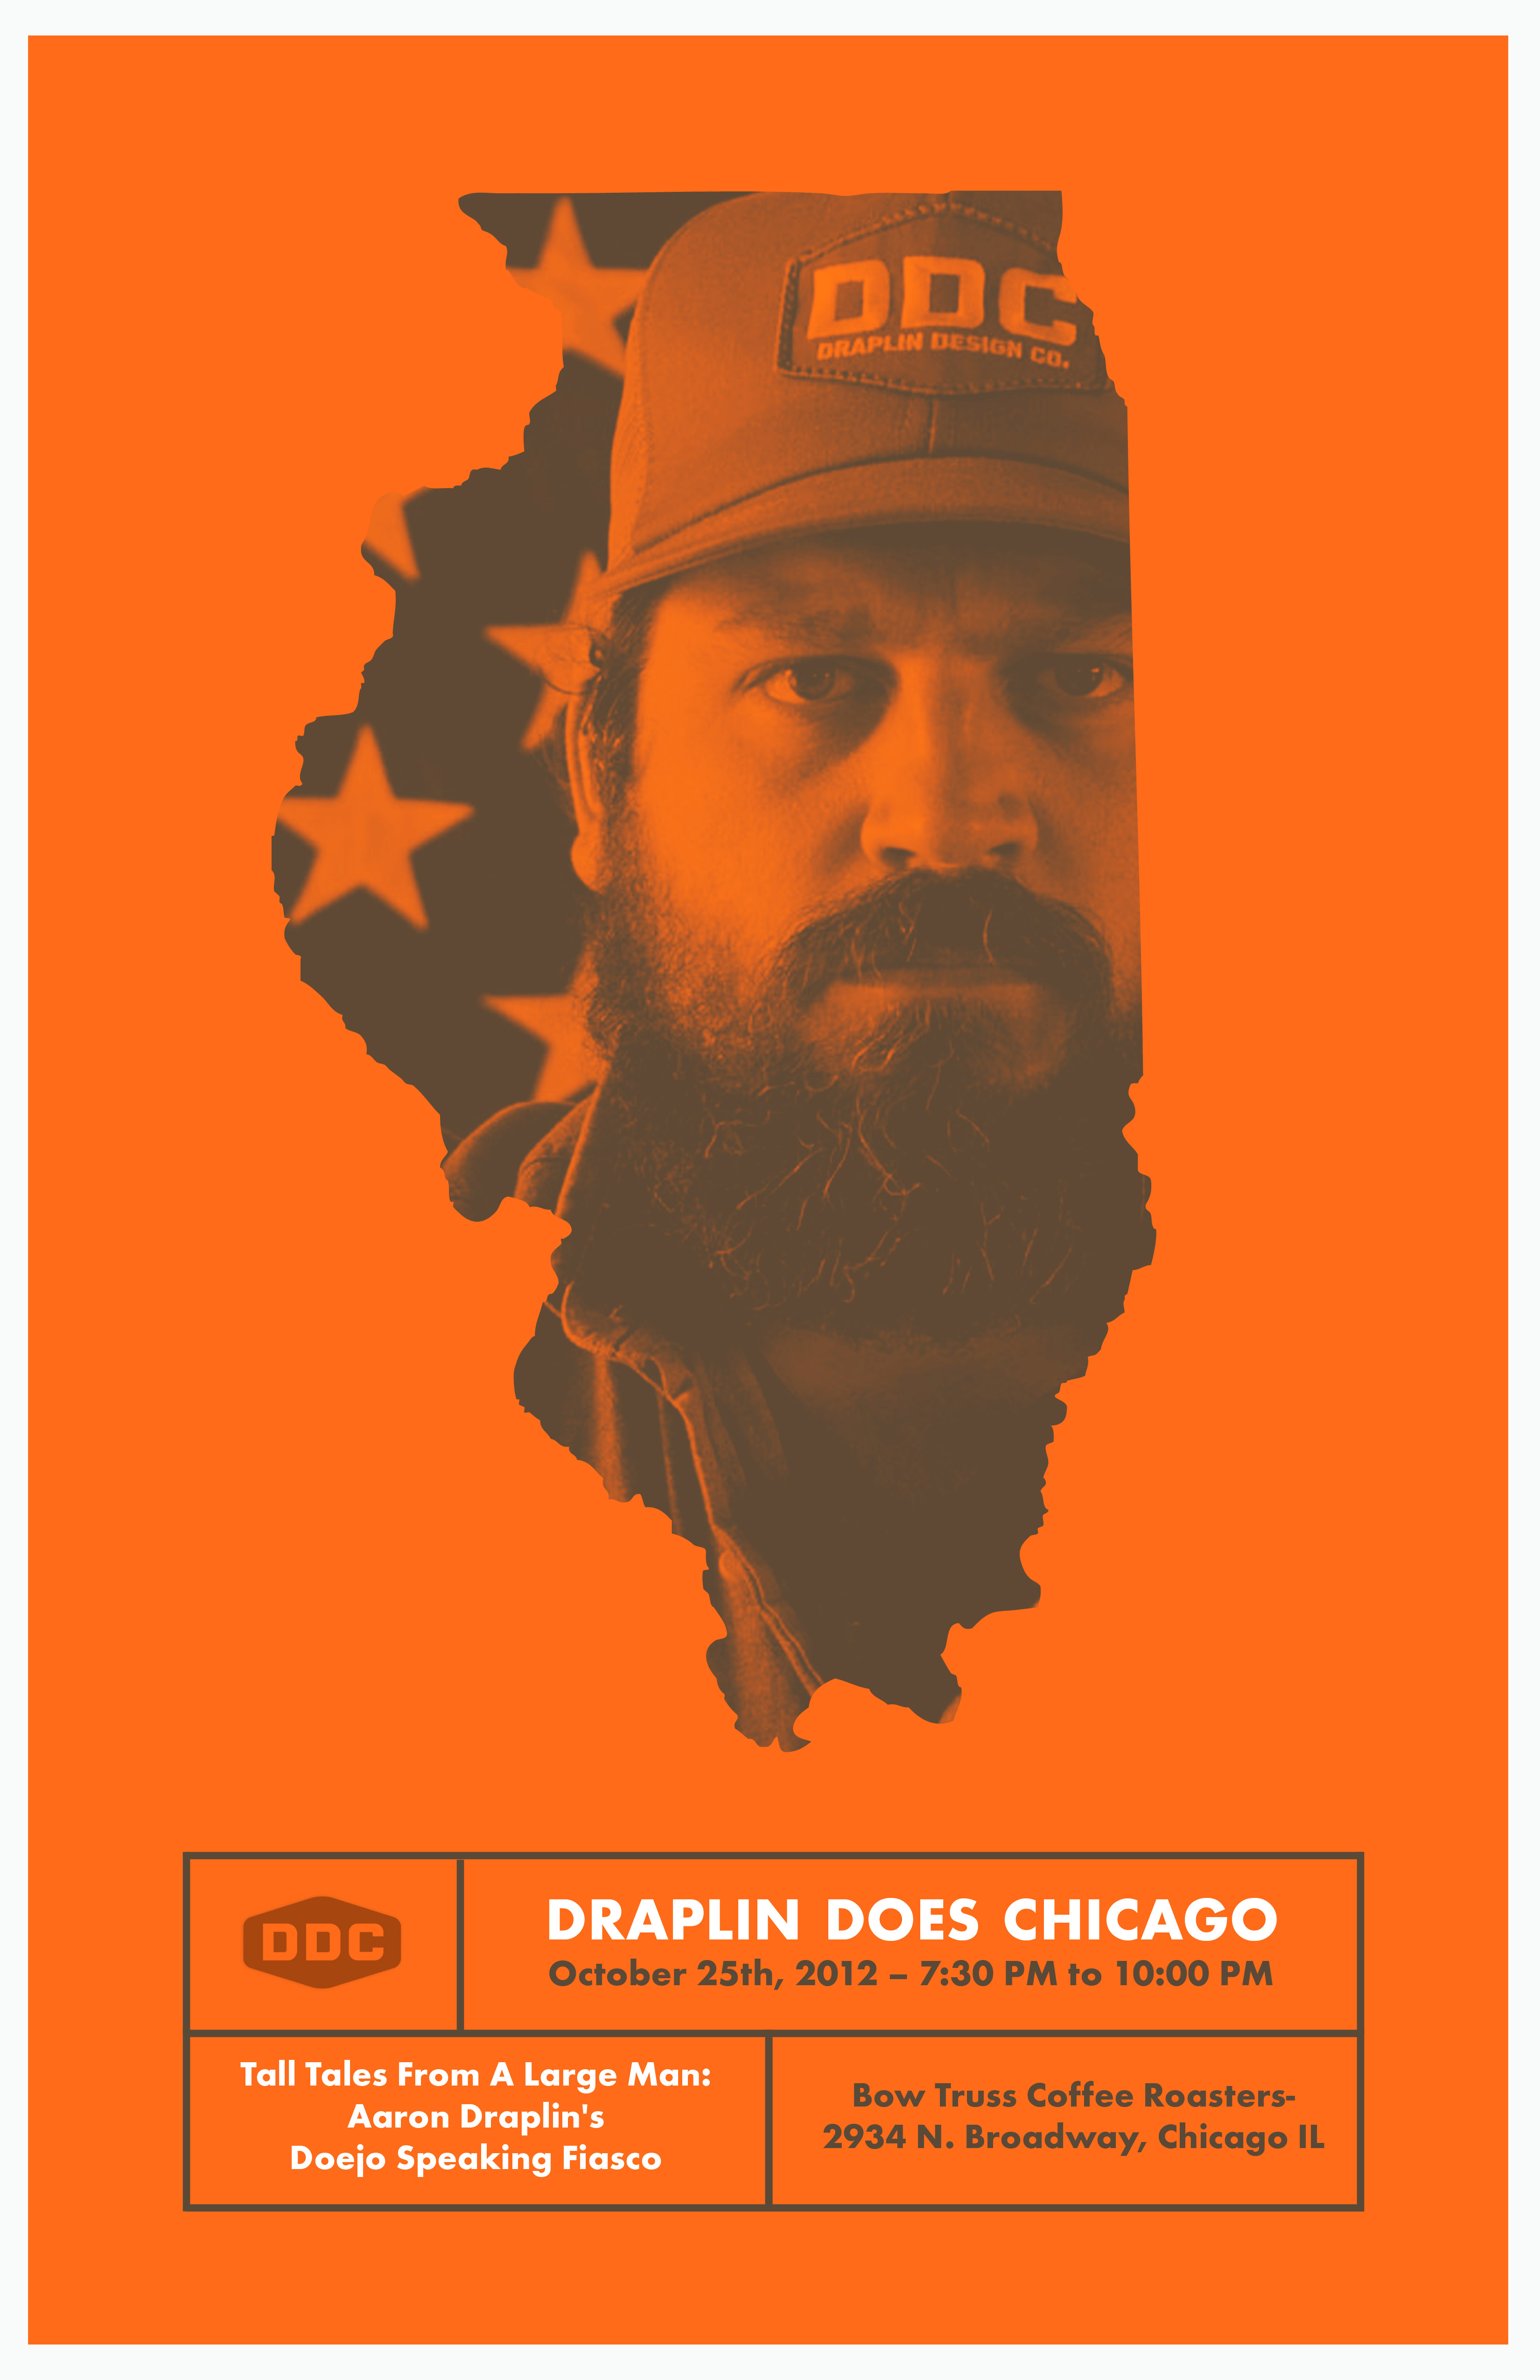 tall tales from a large man aaron draplin 39 s doejo speaking fiasco tickets thu oct 25 2012 at. Black Bedroom Furniture Sets. Home Design Ideas